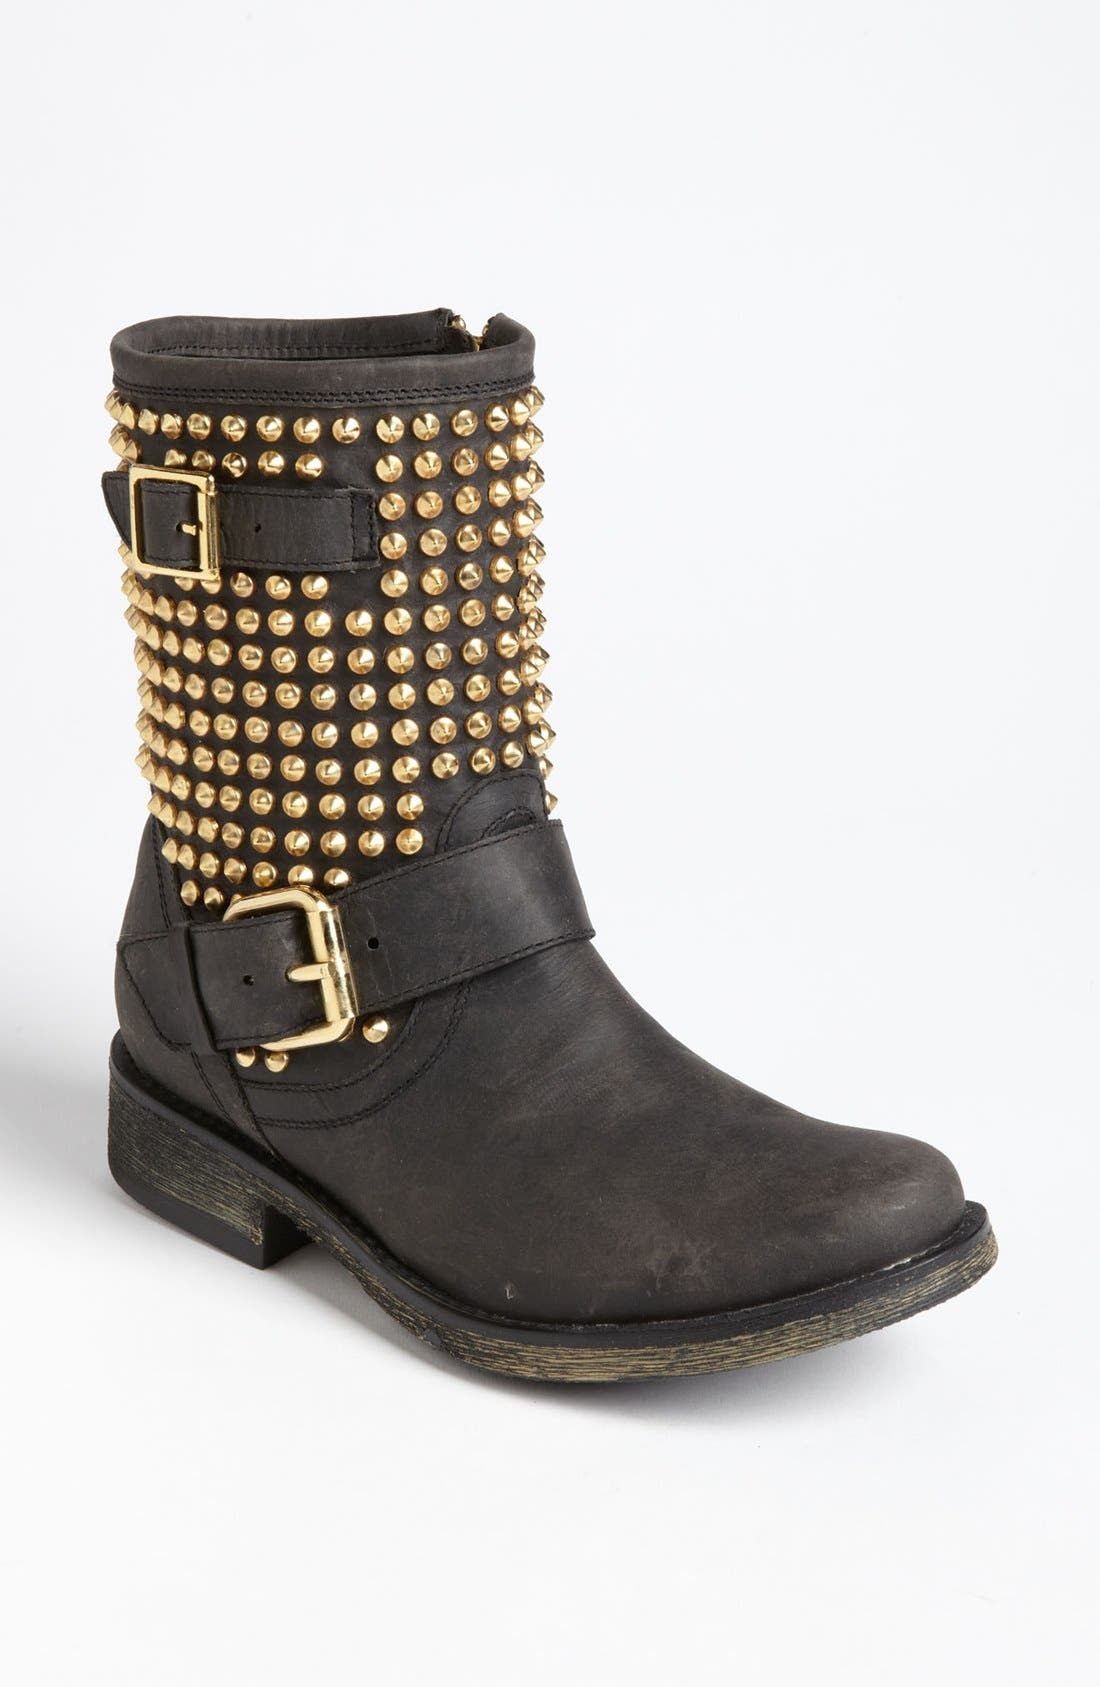 Alternate Image 1 Selected - Steve Madden 'Monicaa' Boot